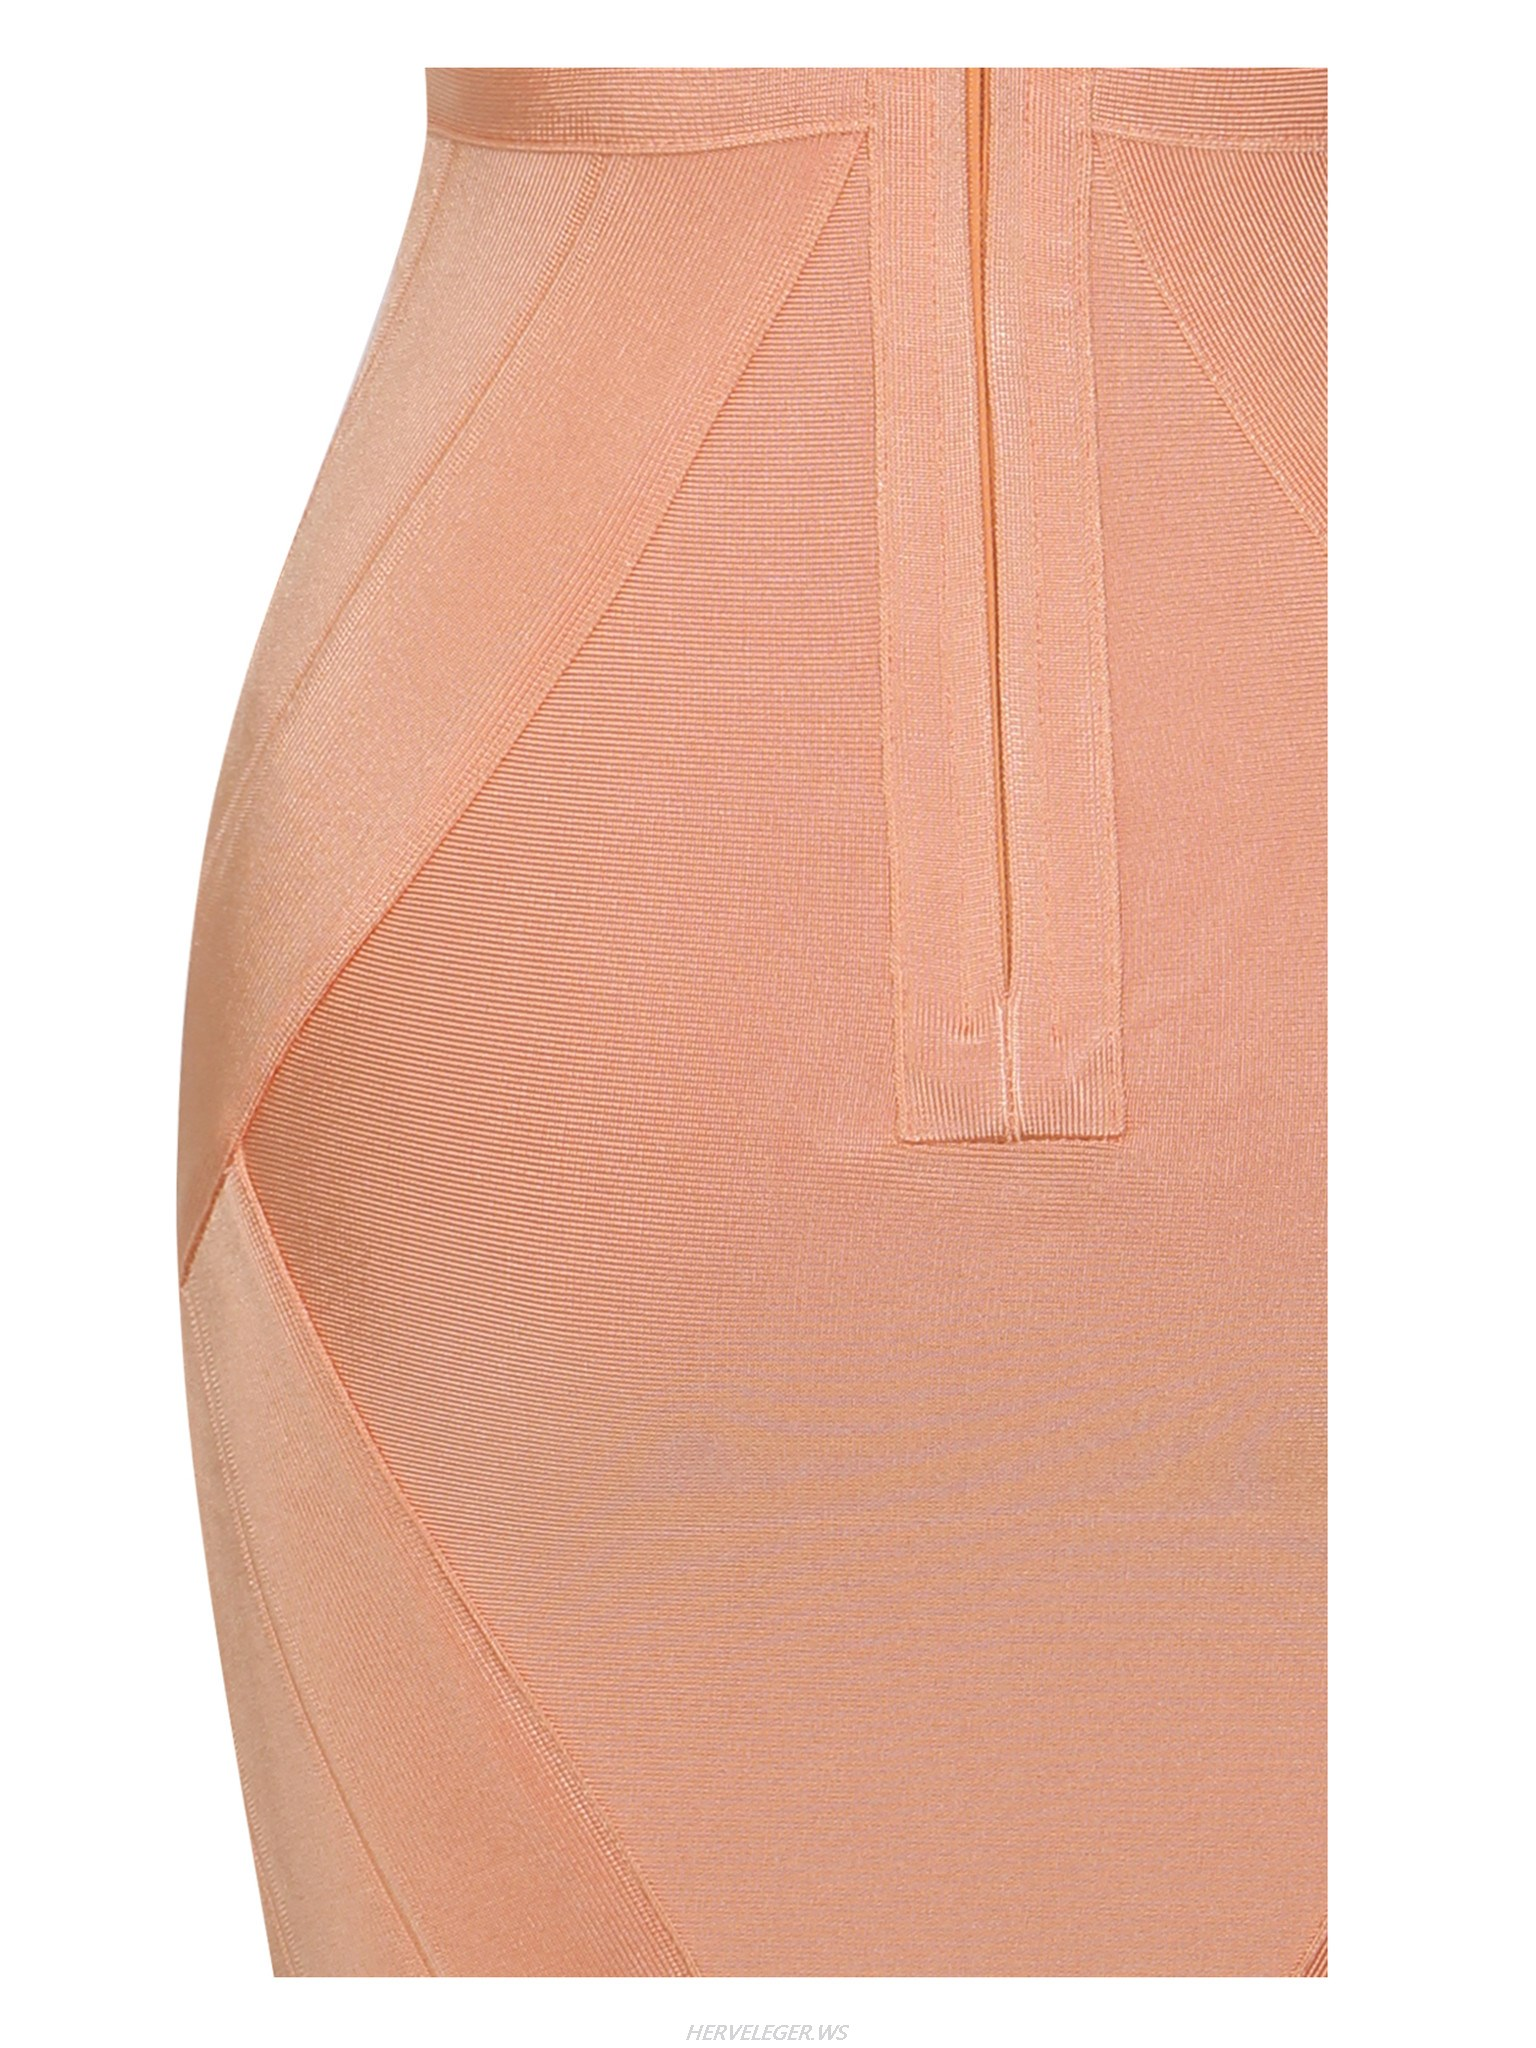 Herve Leger Orange Cleavage Cutout Dress